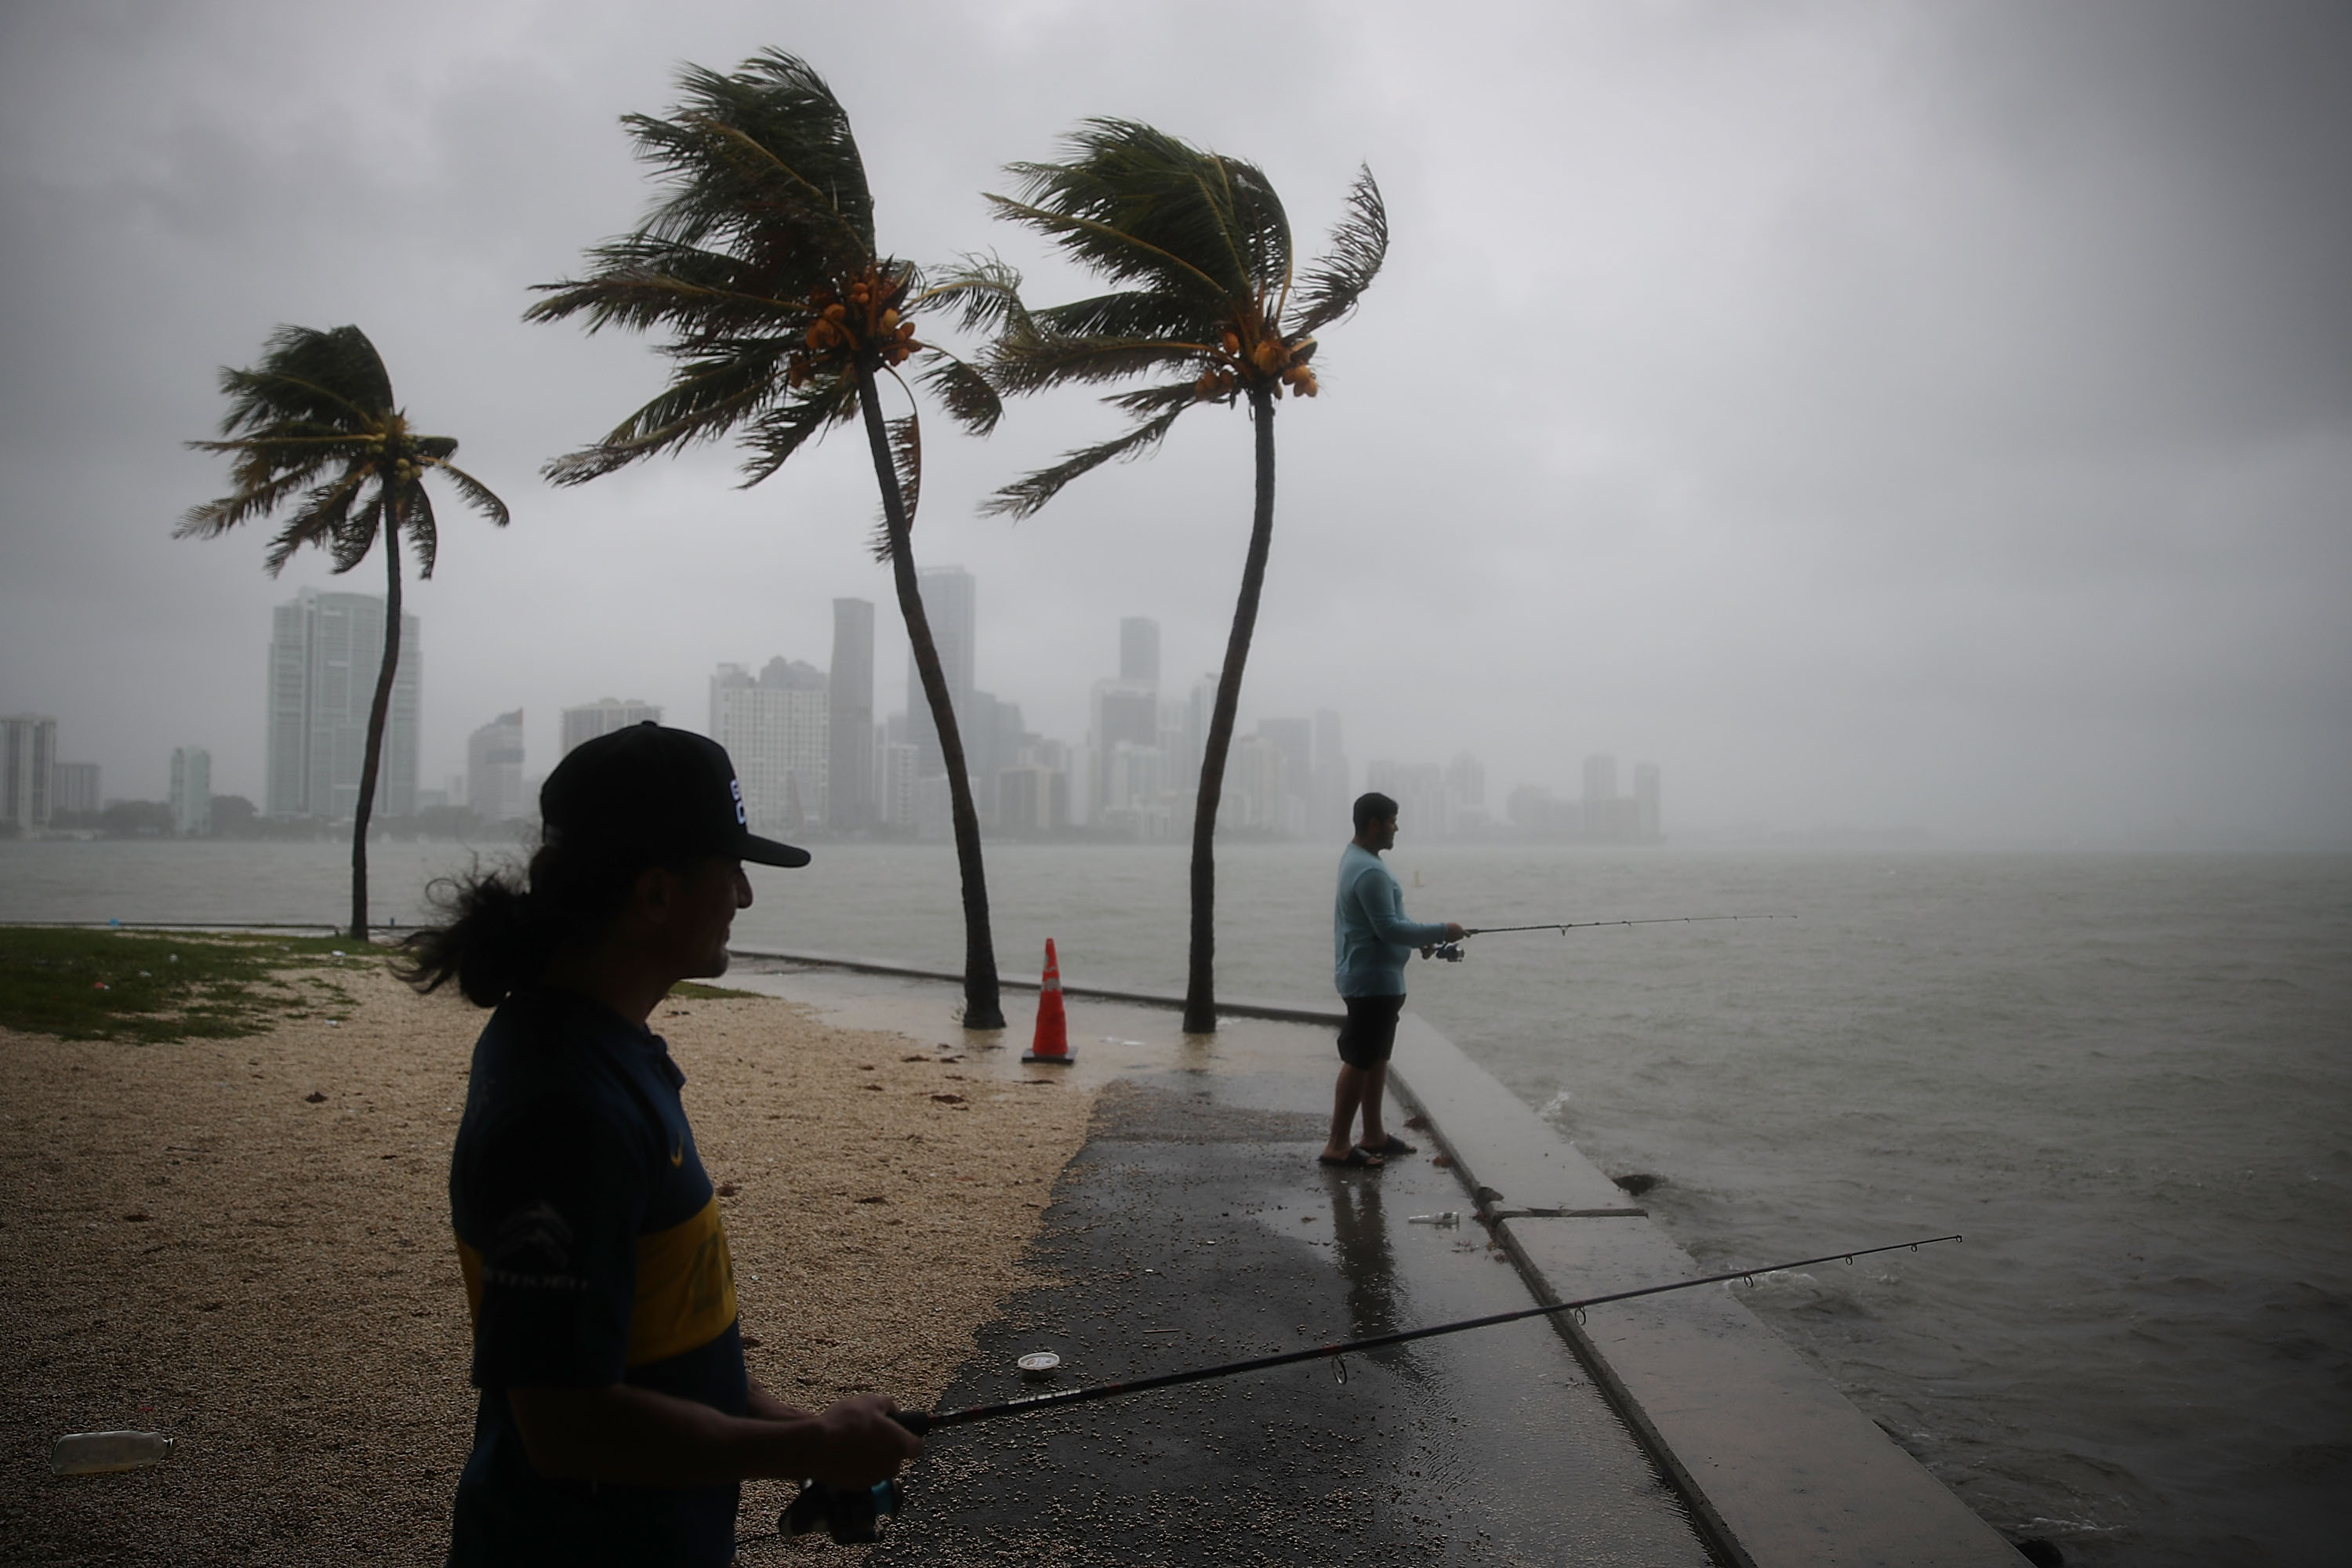 <div class='meta'><div class='origin-logo' data-origin='none'></div><span class='caption-text' data-credit='Joe Raedle/Getty Images'>Walter Augier (L) and Jhon M. fish as rain and wind are whipped up by Tropical Storm Gordon on September 3, 2018 in Miami, Florida.</span></div>